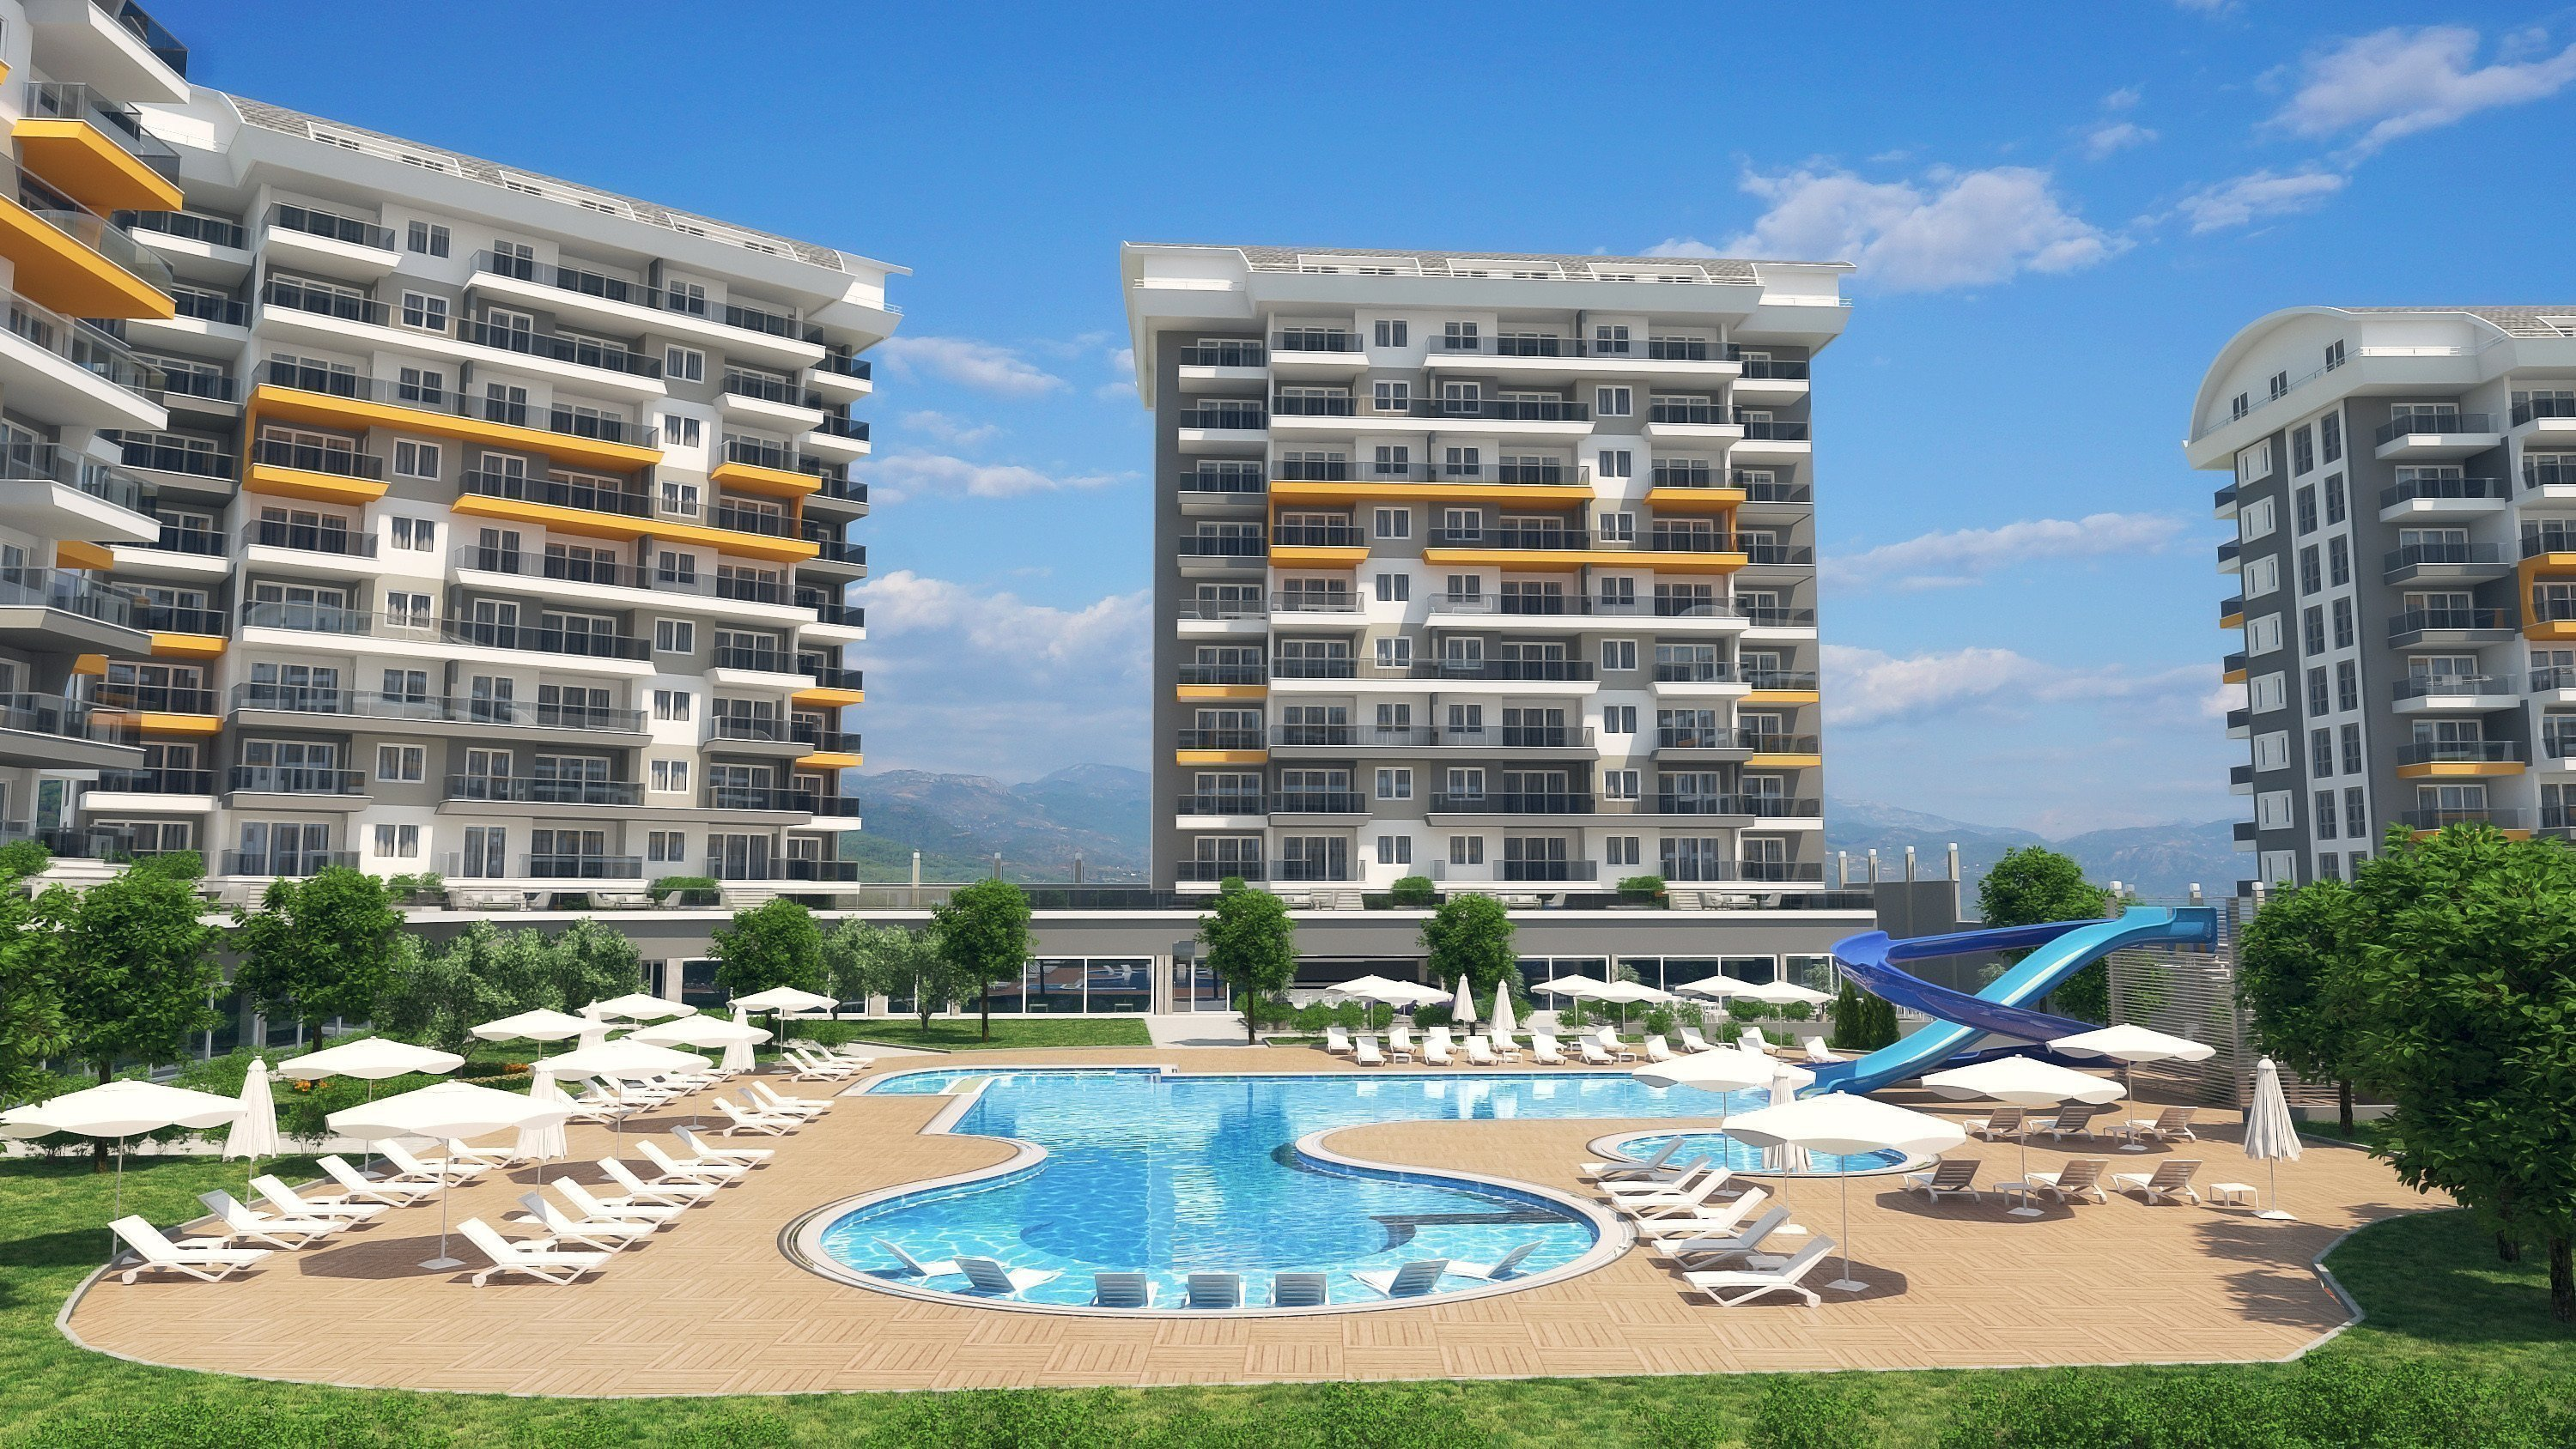 Sale property abroad Apartments in Avsallar